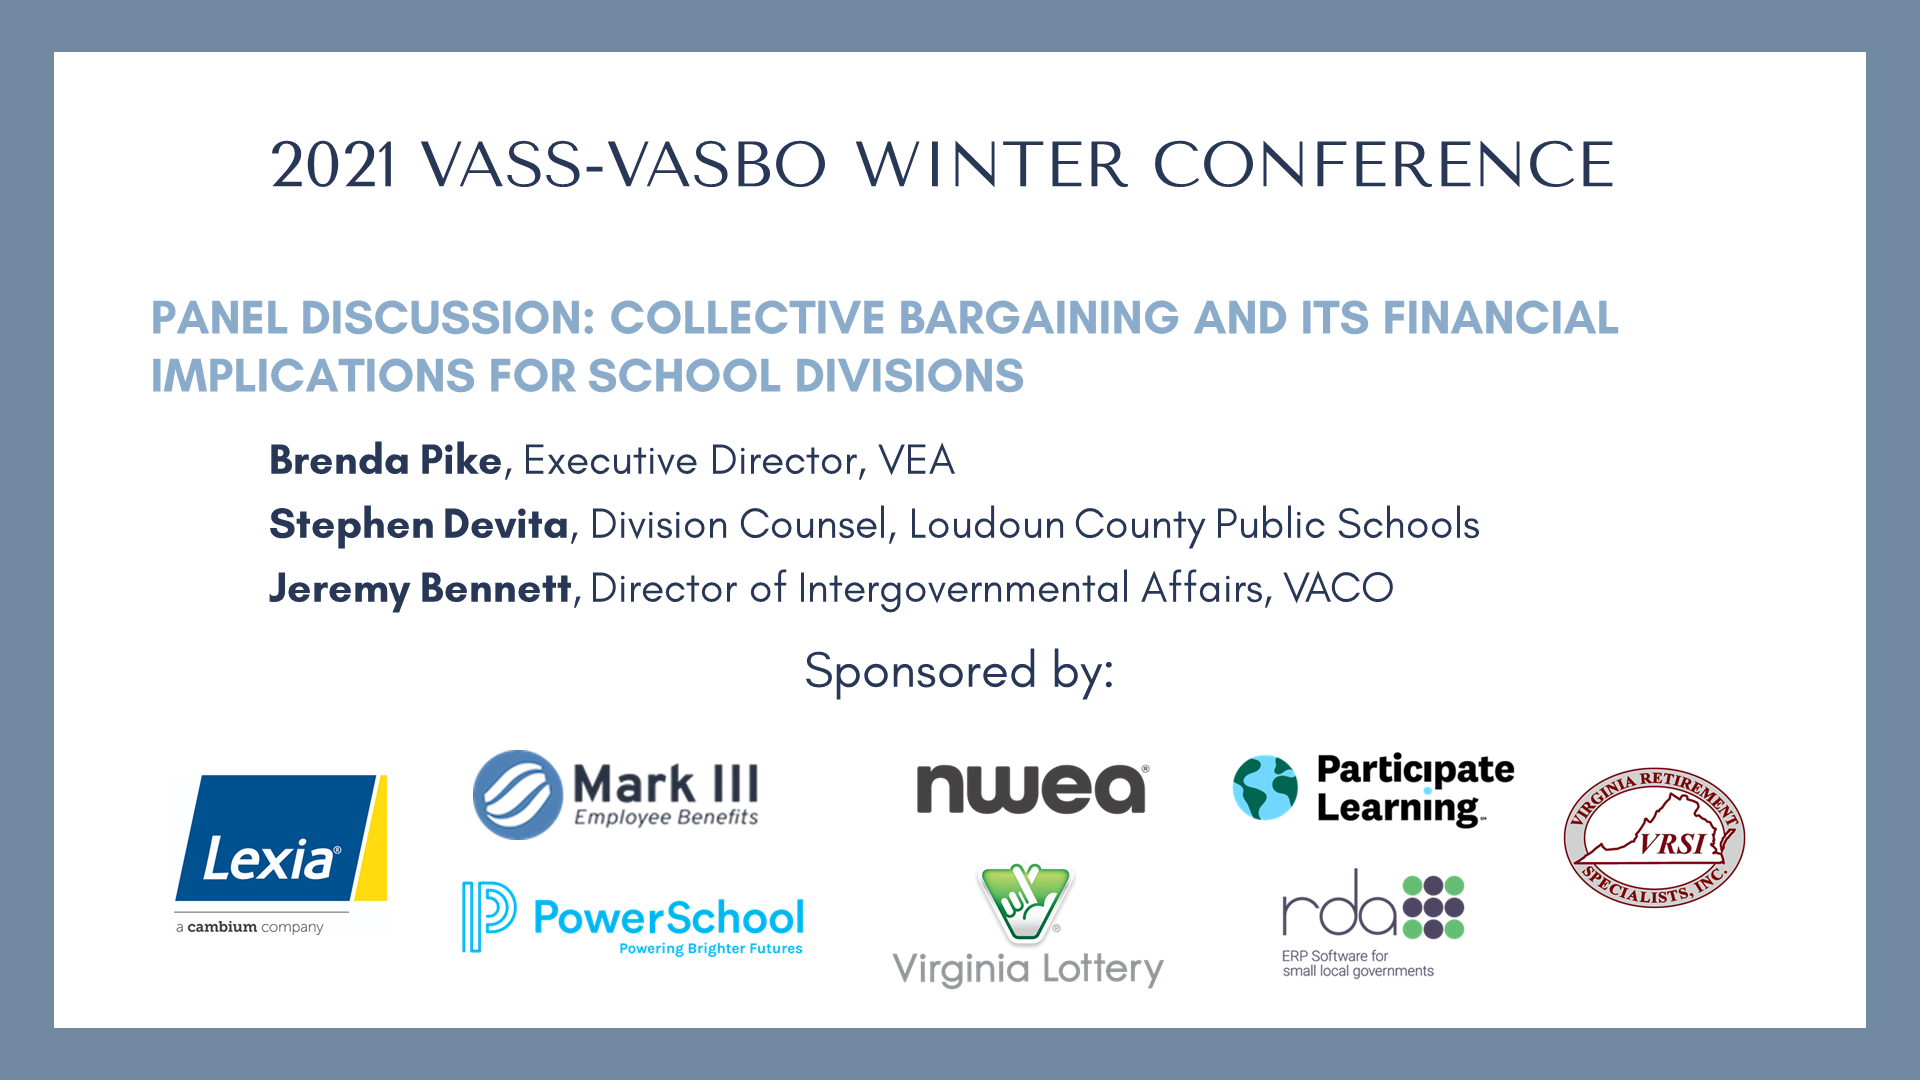 Panel Discussion: Collective Bargaining and its financial implications for school divisions